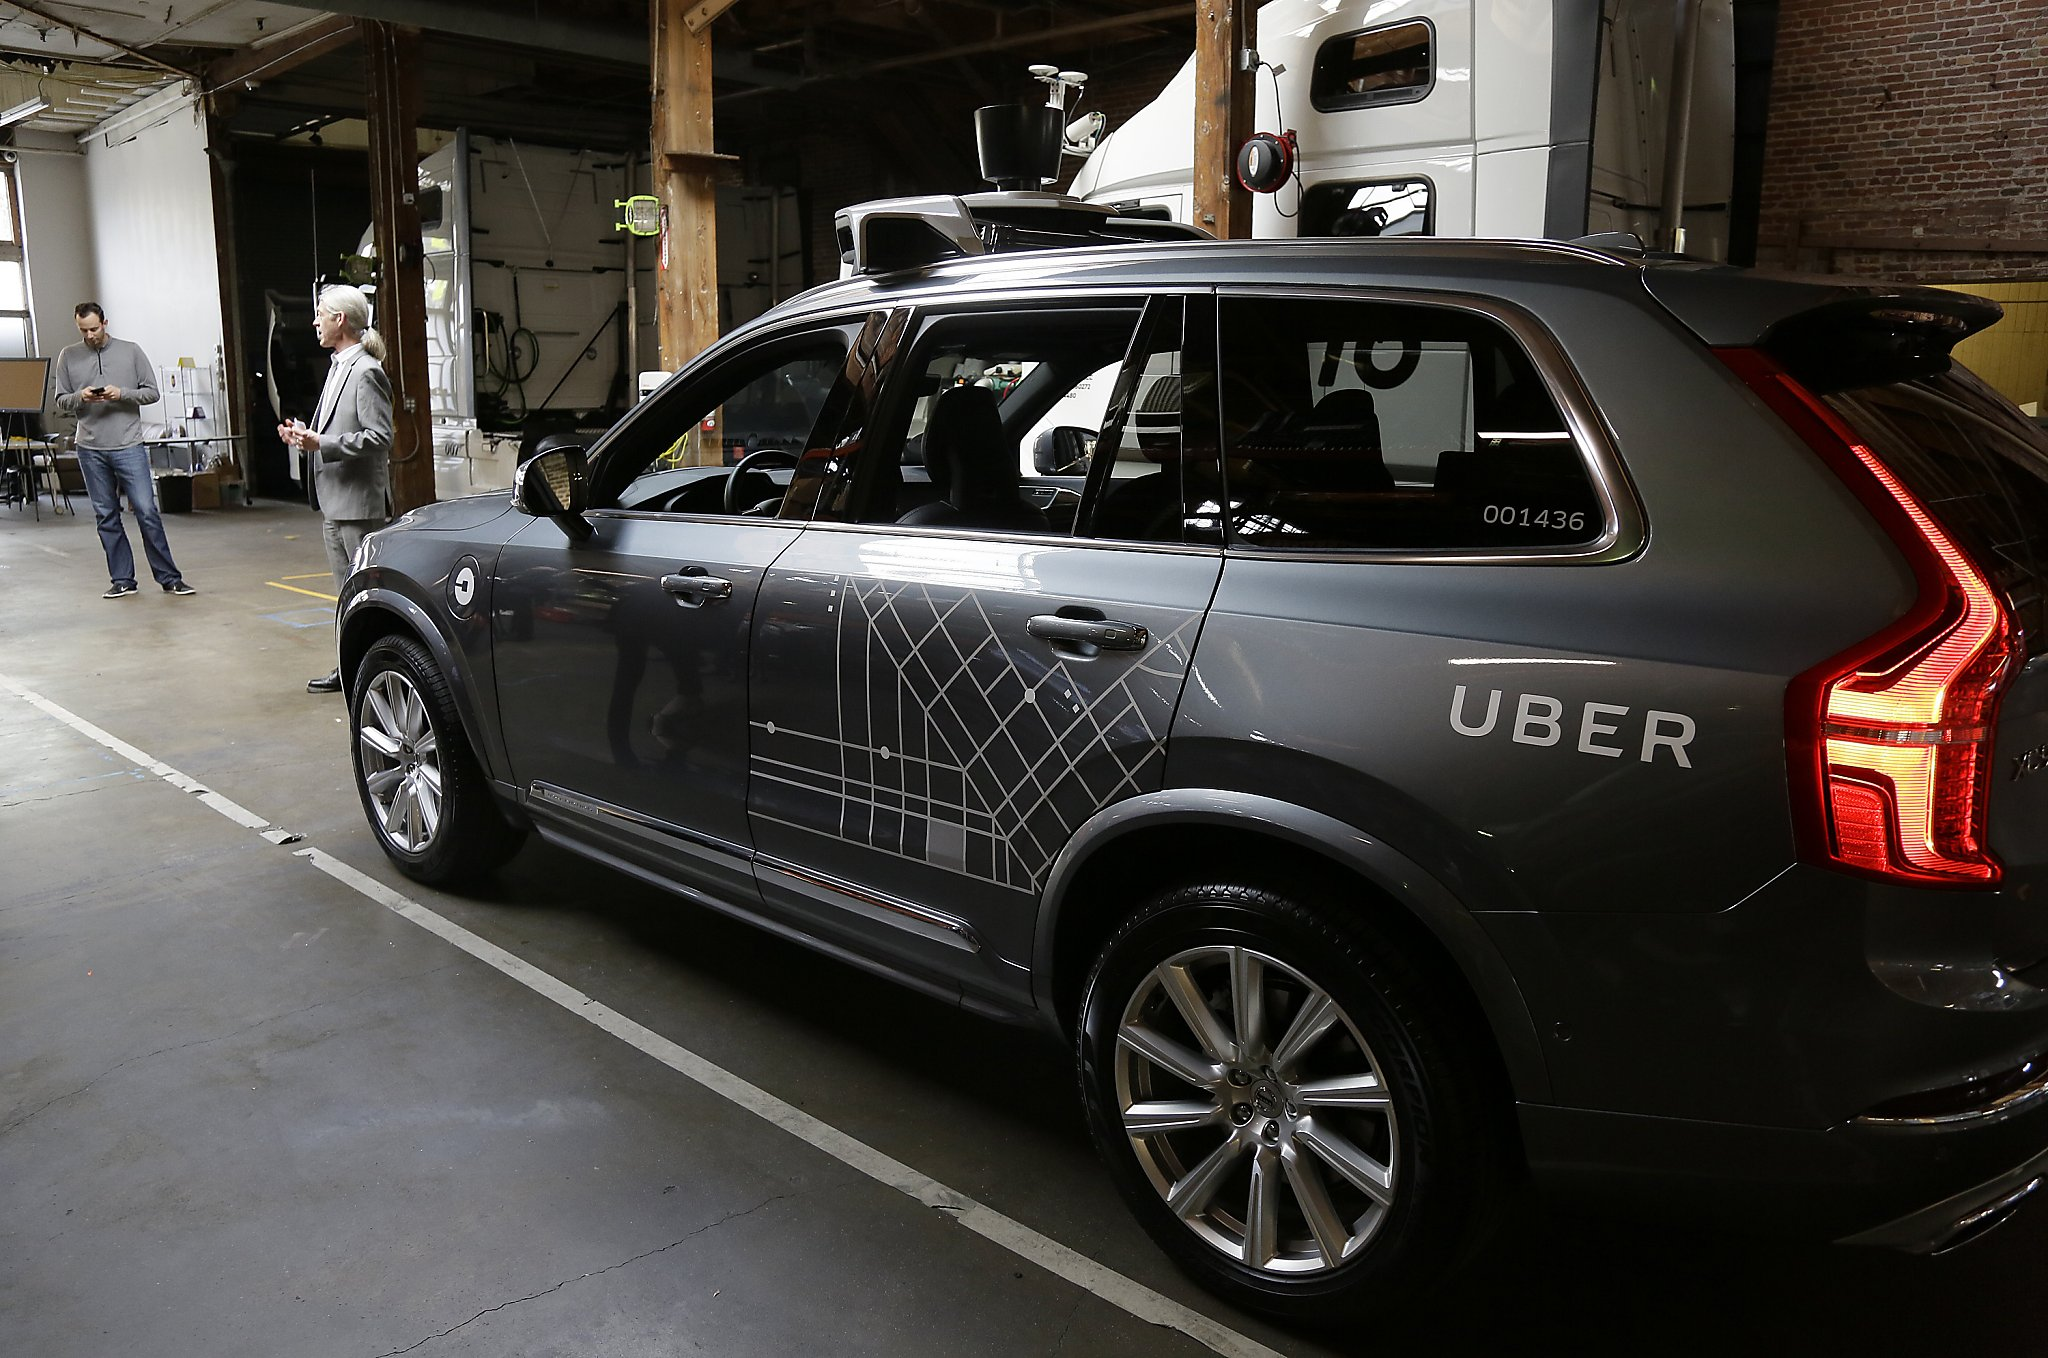 bike group business owner cite uber self driving mishaps sfgate